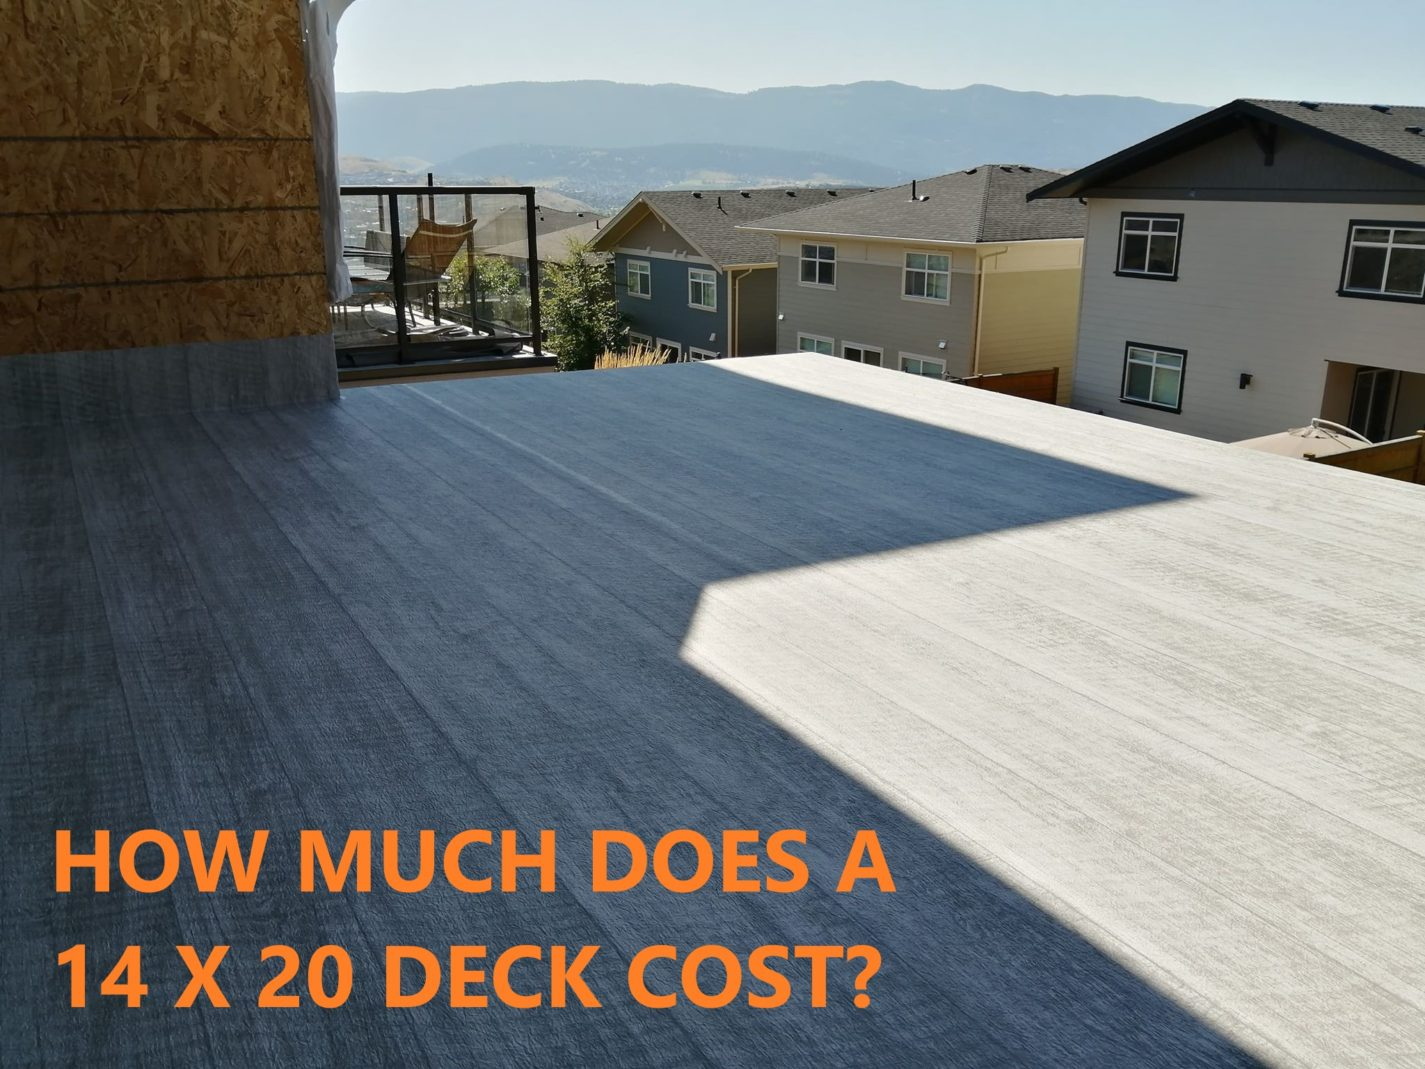 how much does a 14 x 20 deck cost